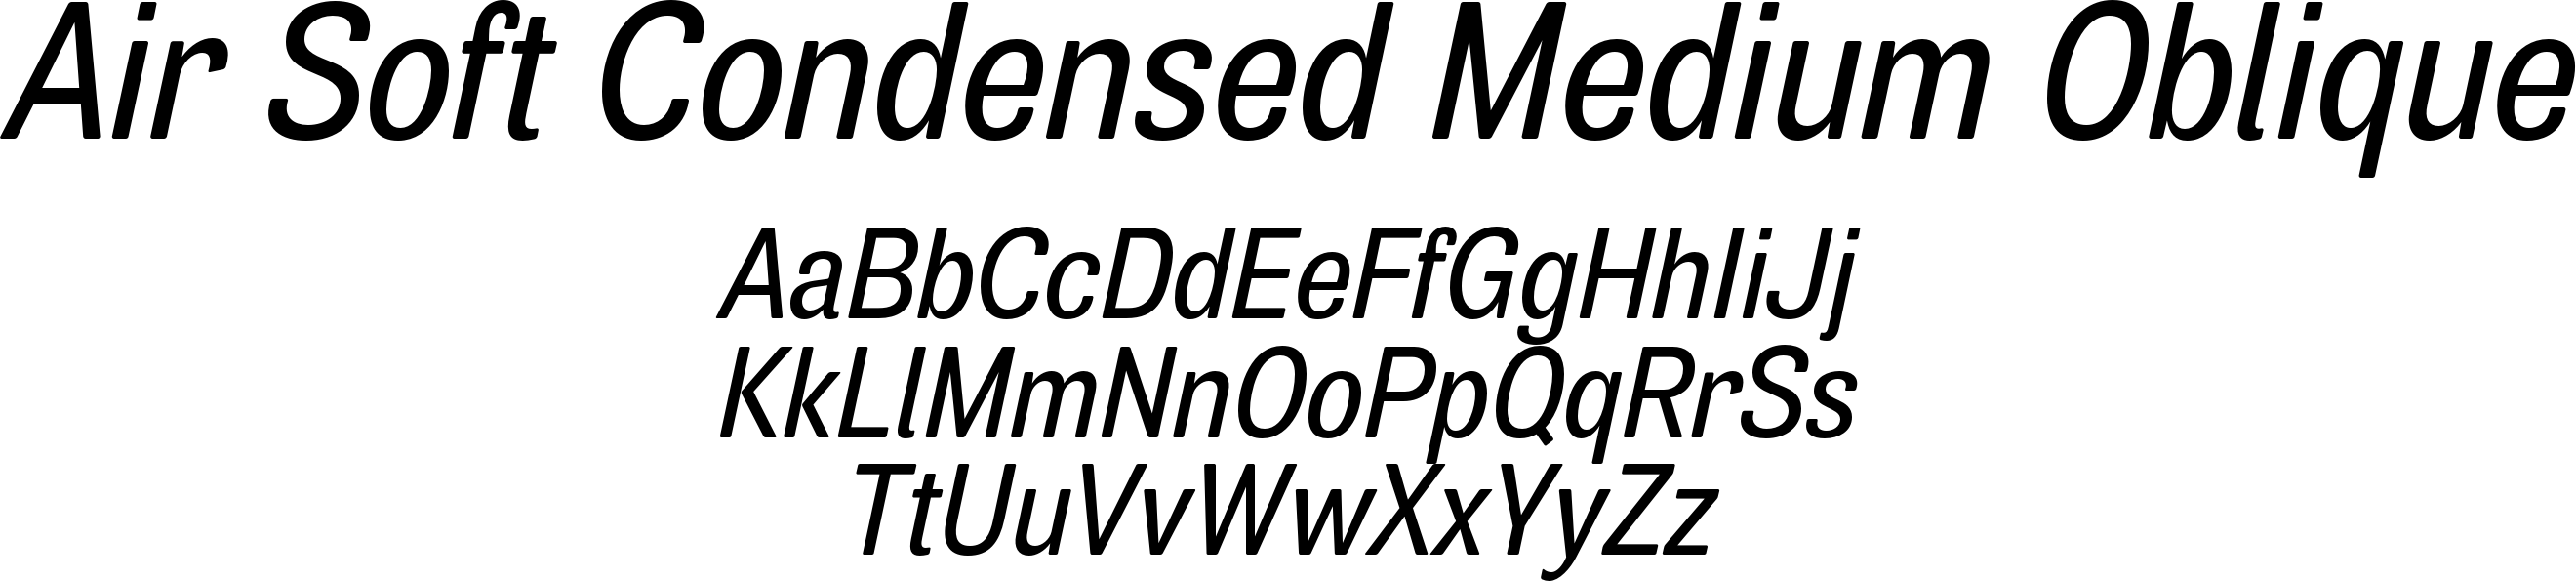 Air Soft Condensed Medium Oblique